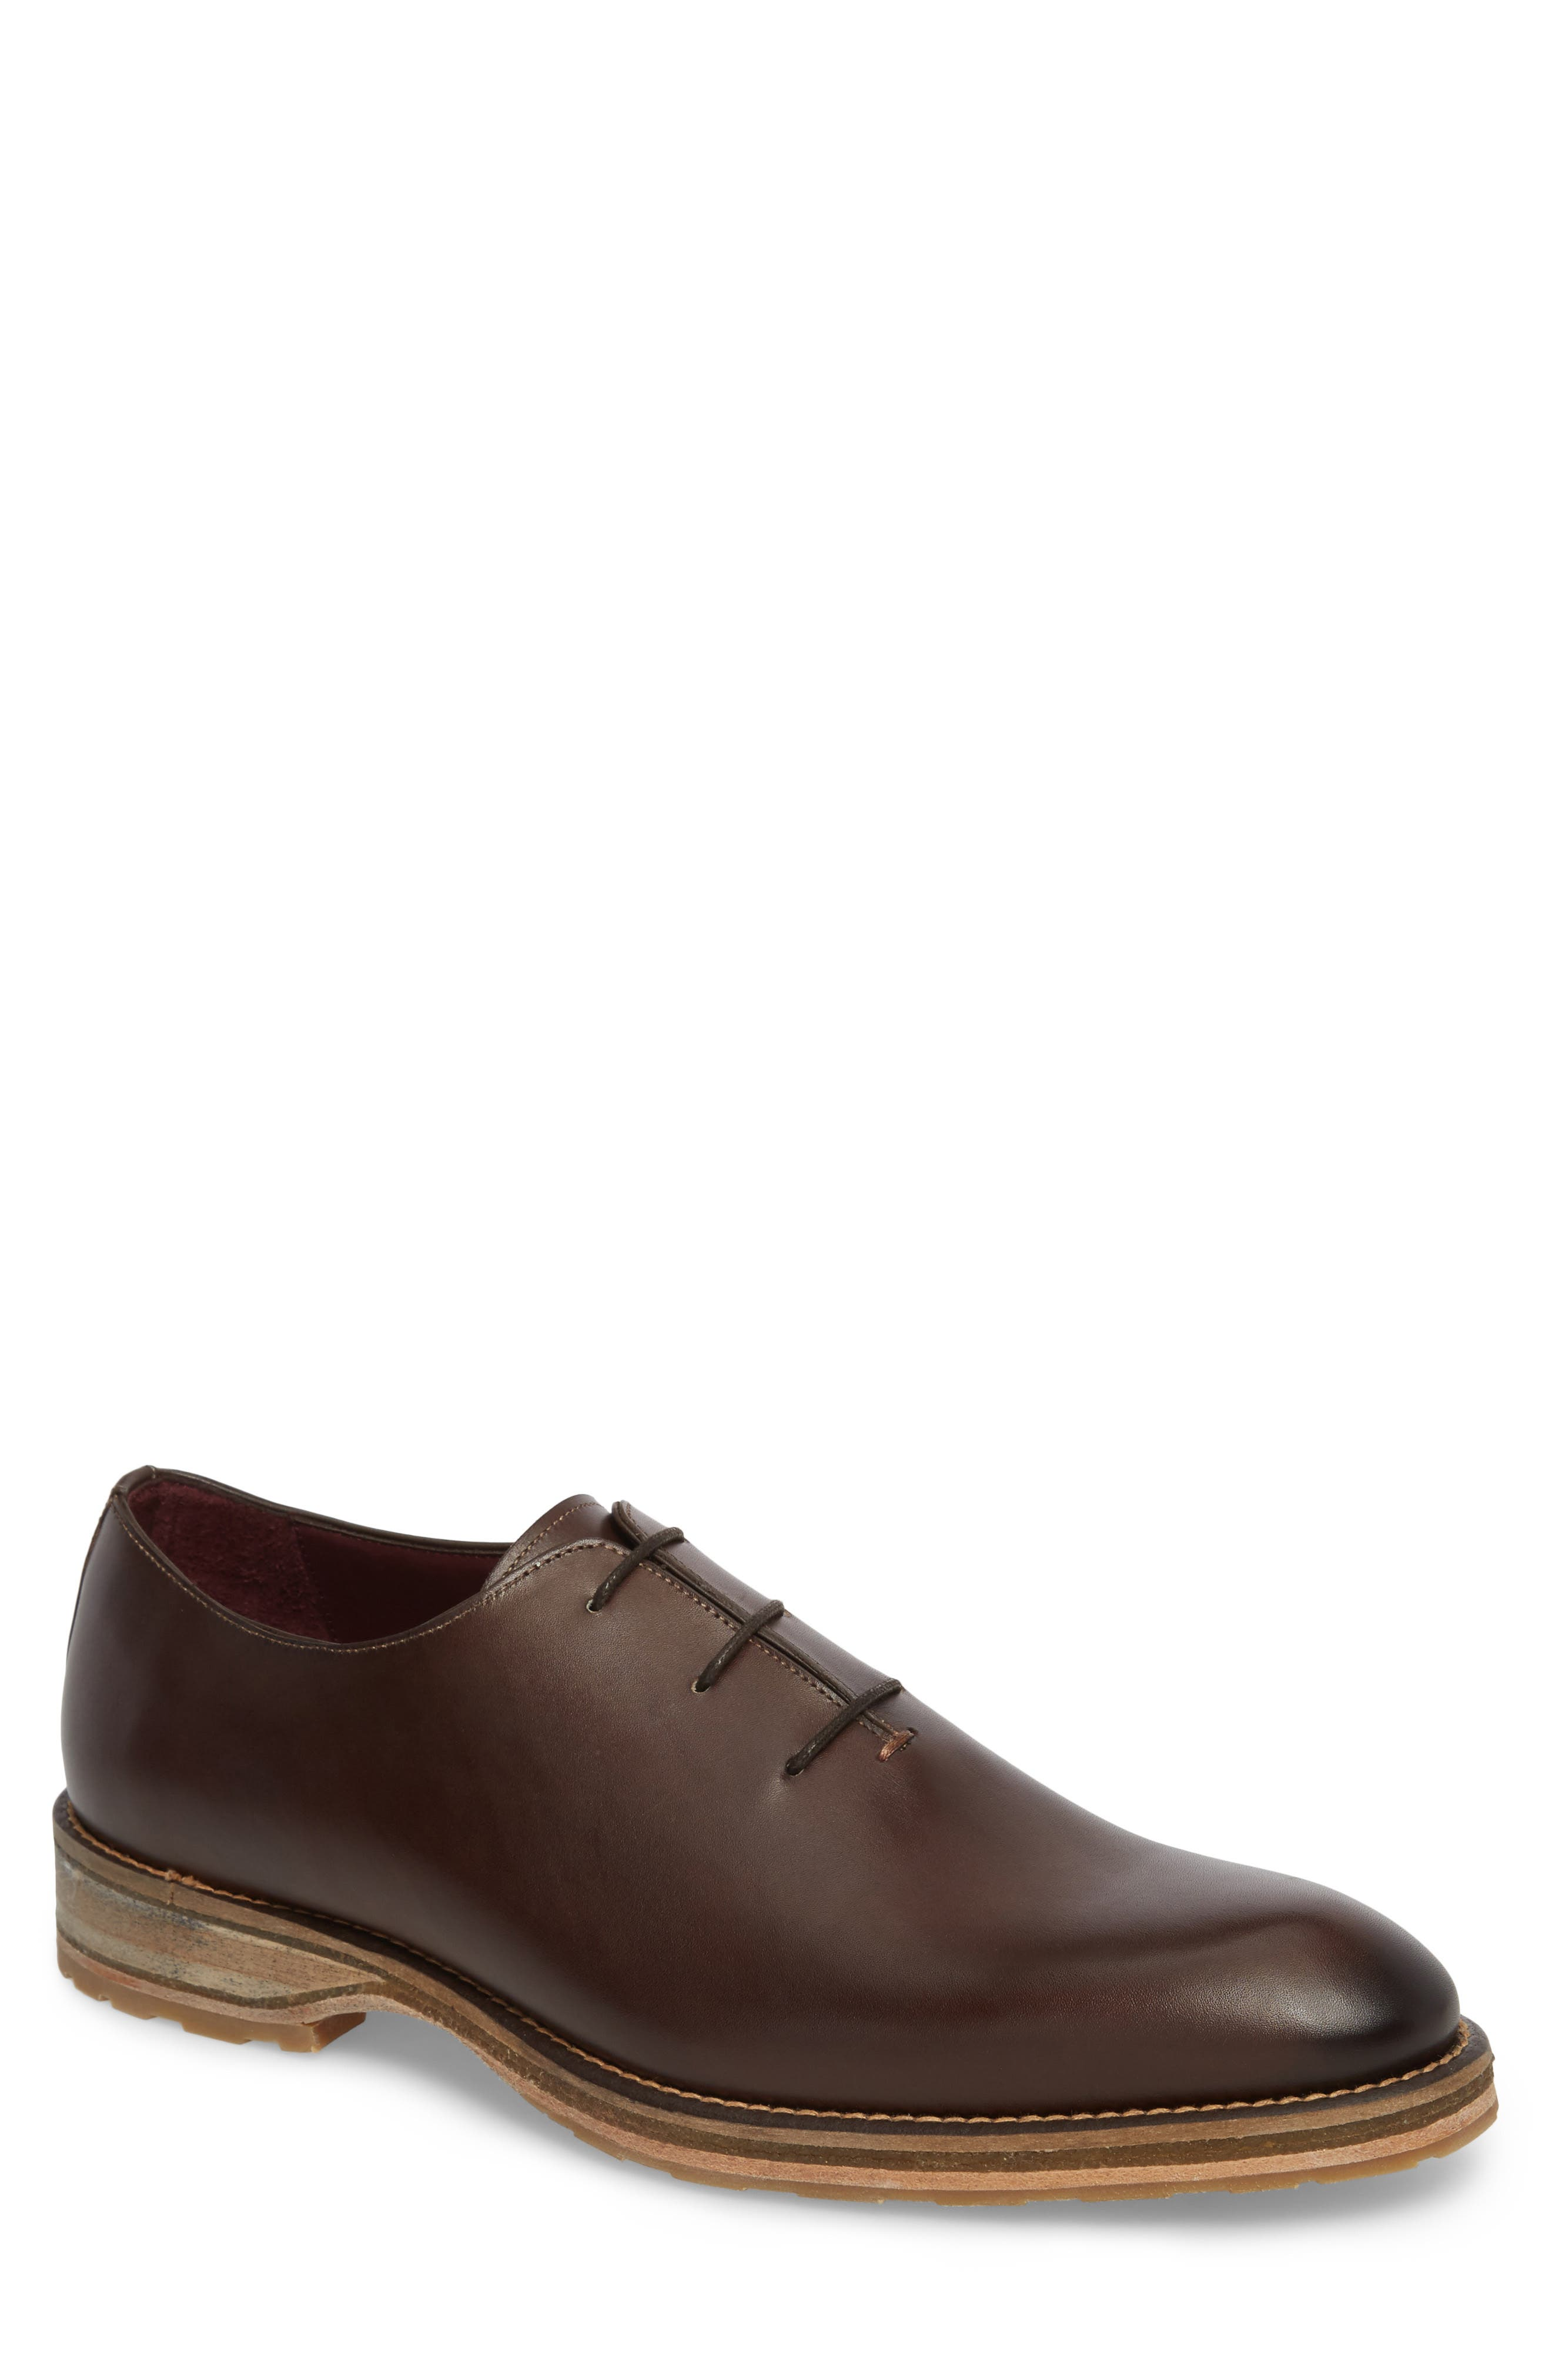 Pego Wholecut Oxford,                         Main,                         color, DARK BROWN LEATHER